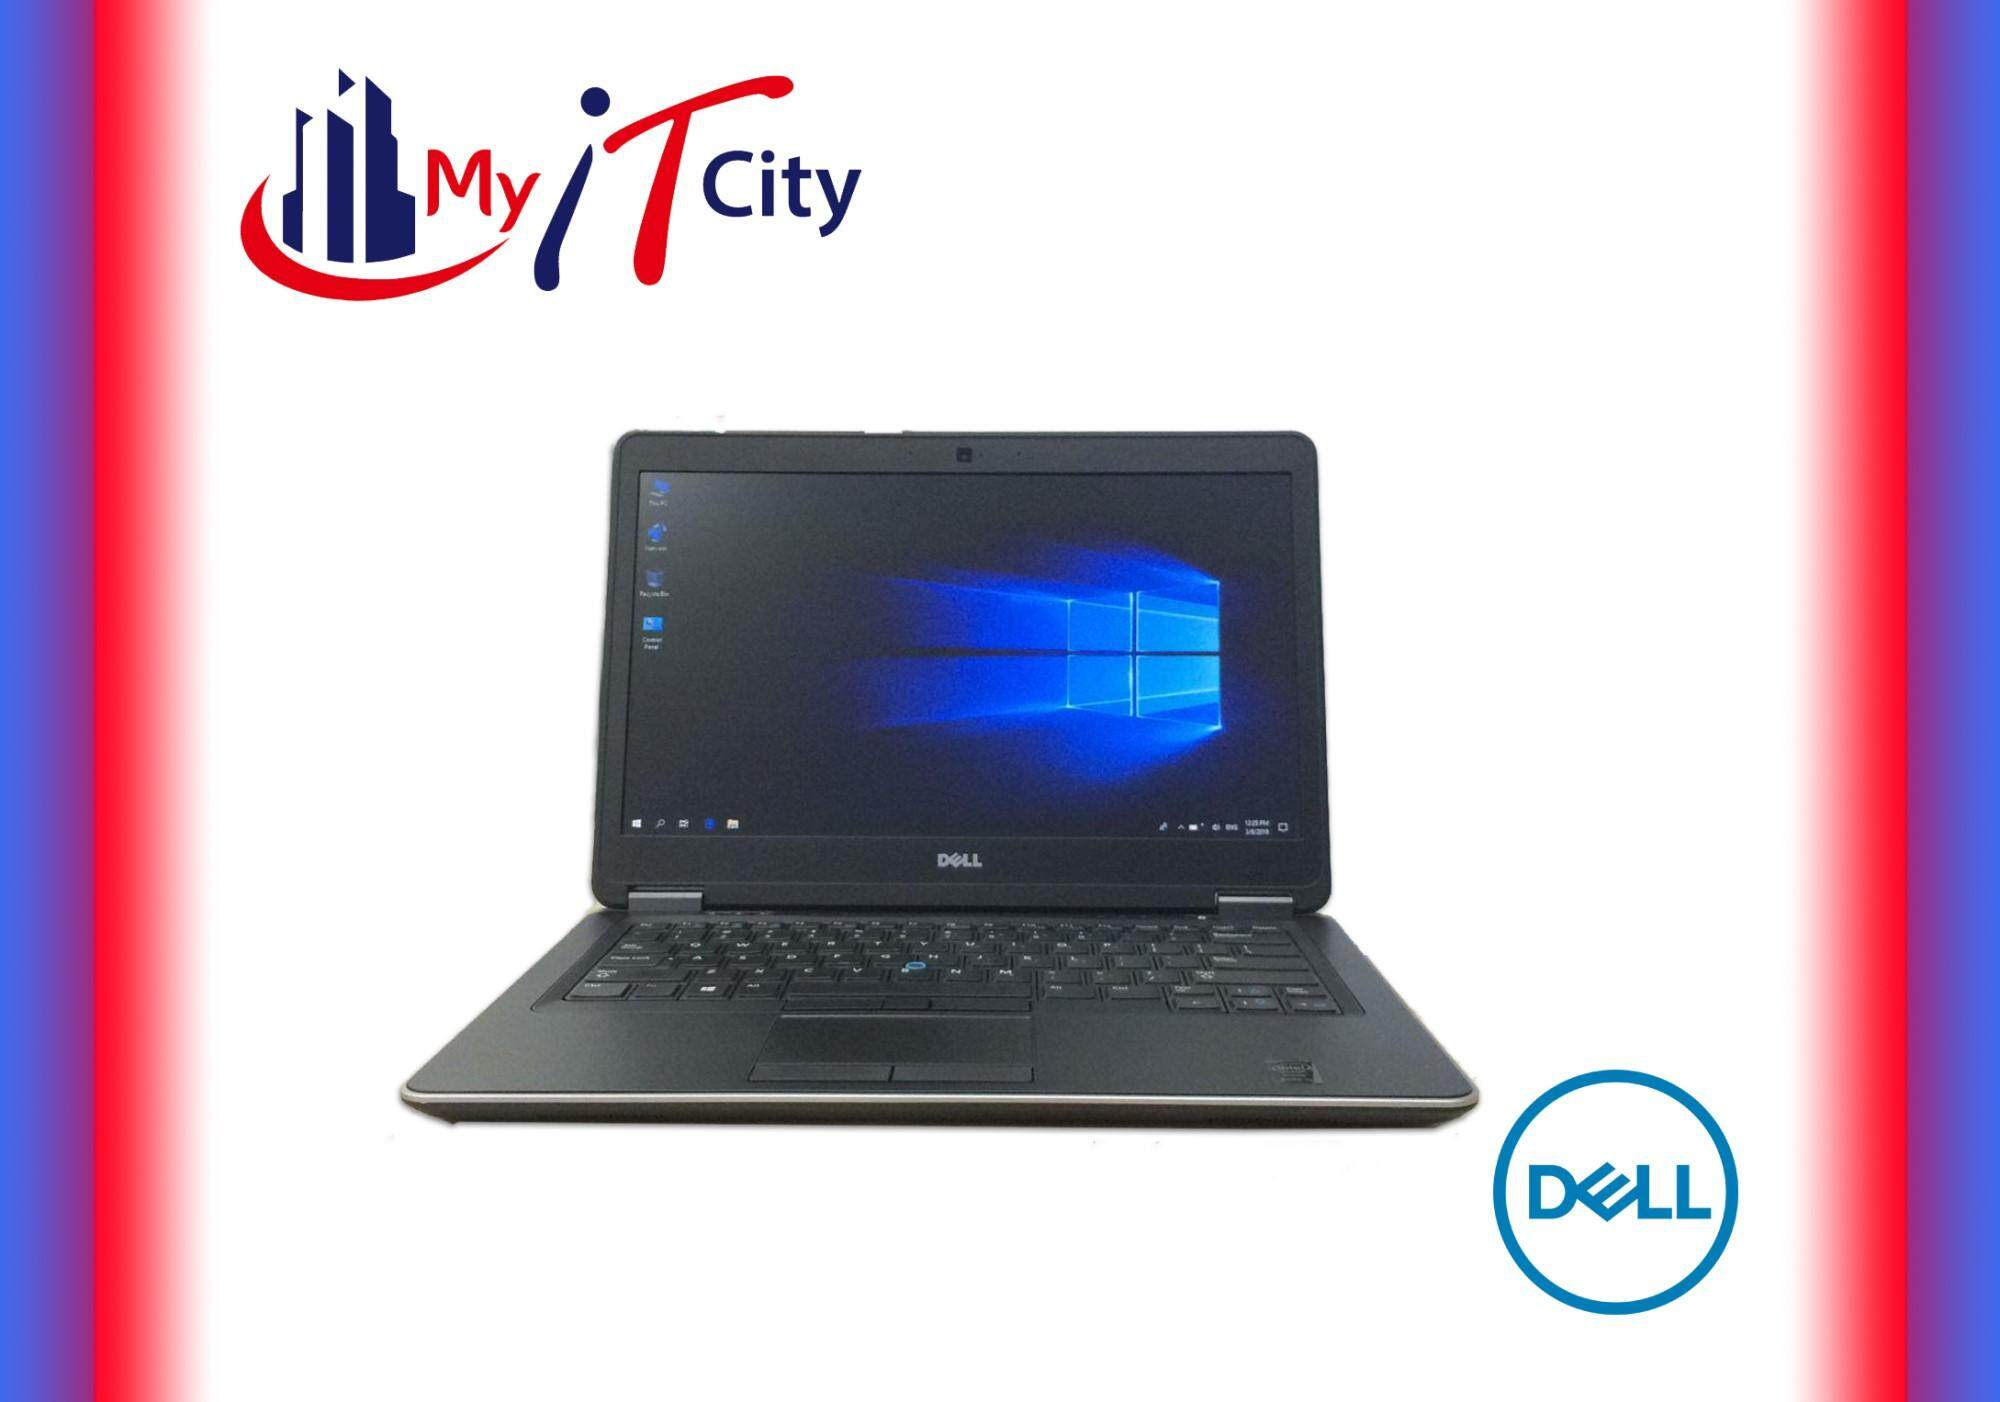 Dell Latitude E7440 Ultrabook - Core i5 4th Gen / 4GB RAM / 256GB SSD / Windows 10 Pro / 3 Months Warranty (Refurbished) Malaysia